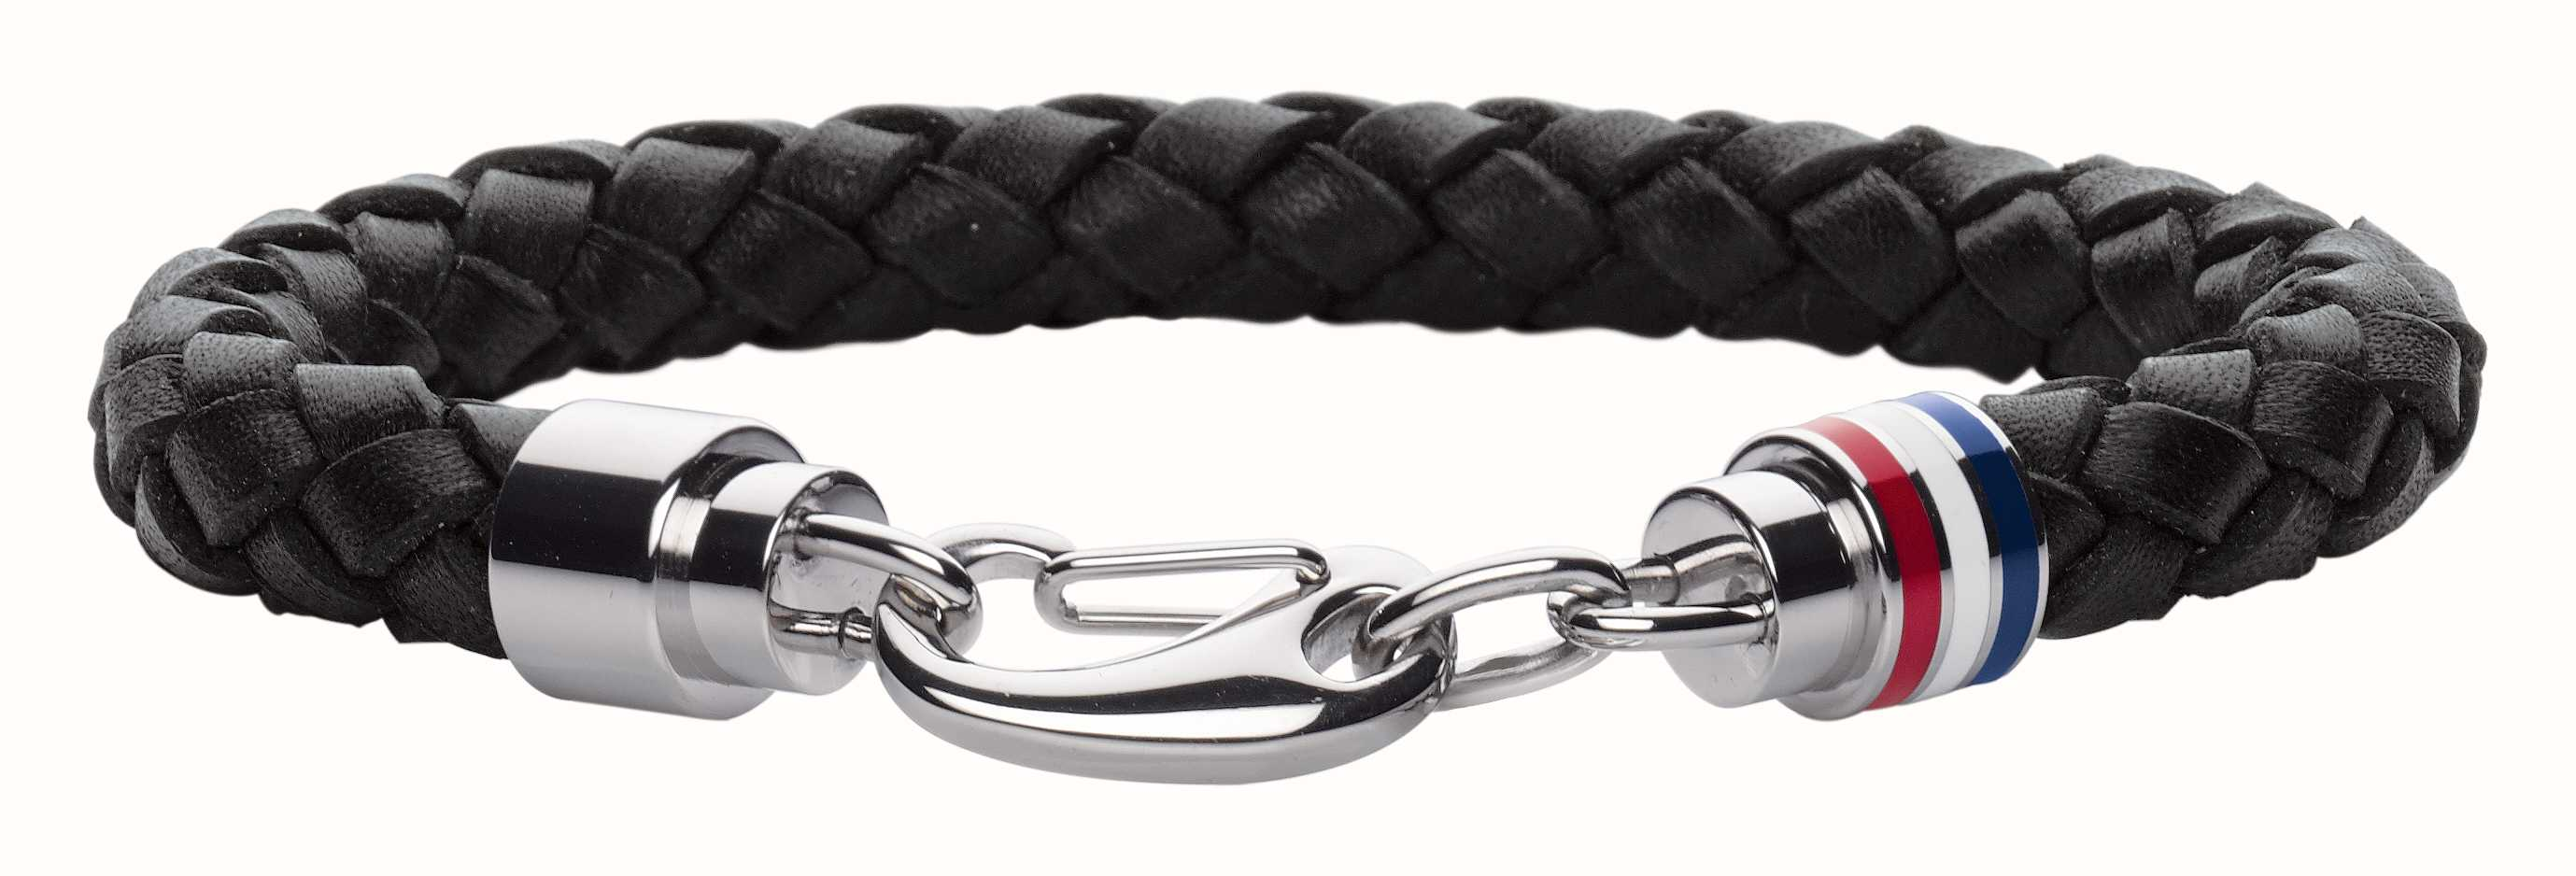 dff28621dc6be Tommy Hilfiger Jewellery Mens Black Leather Stainless Steel Bracelet